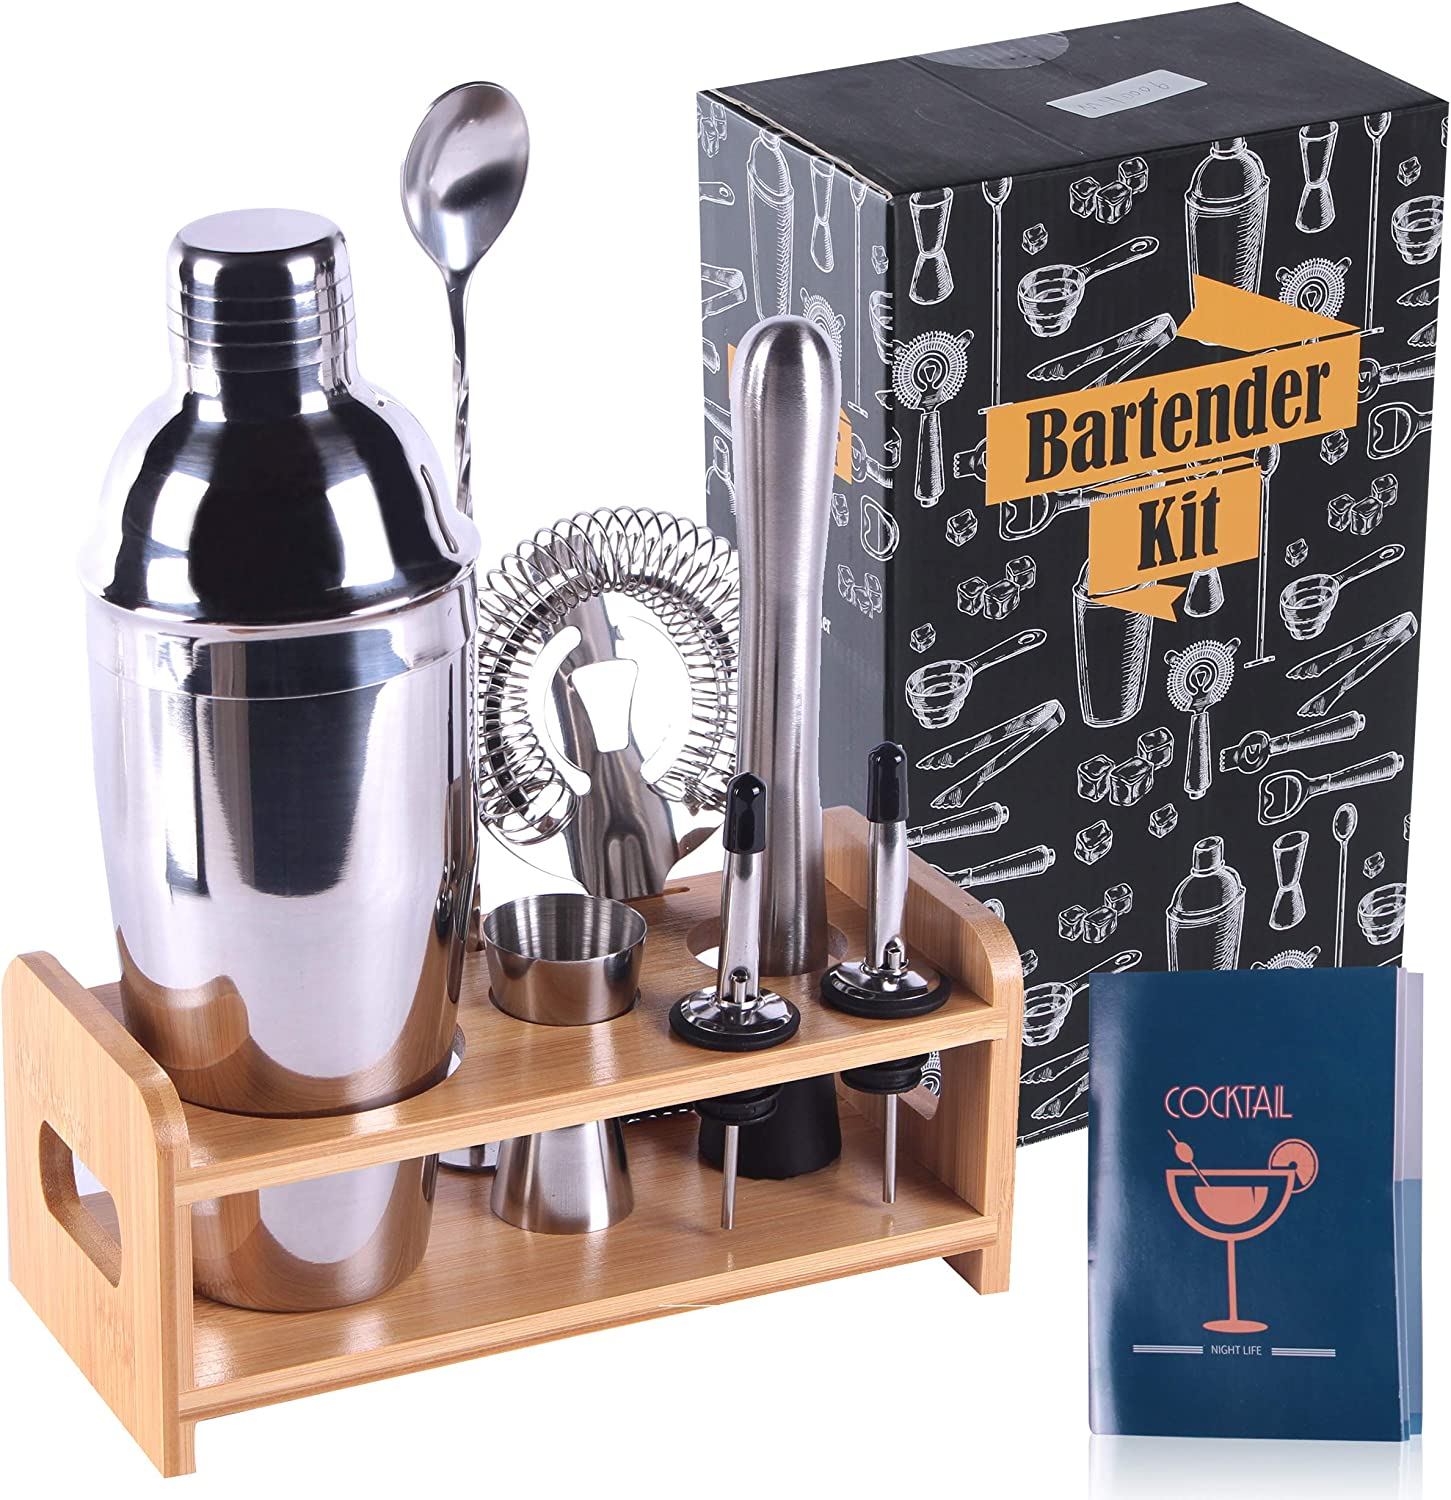 RXXM Professional Bartender Kit 8 Pcs, Bartending Kit Stainless Steel Drink Shakers,Premium Bar Tool Set with Stylish Bamboo Stand&Recipes&Bag,Perfect Home Martini Cocktail Shaker Set(Silver)